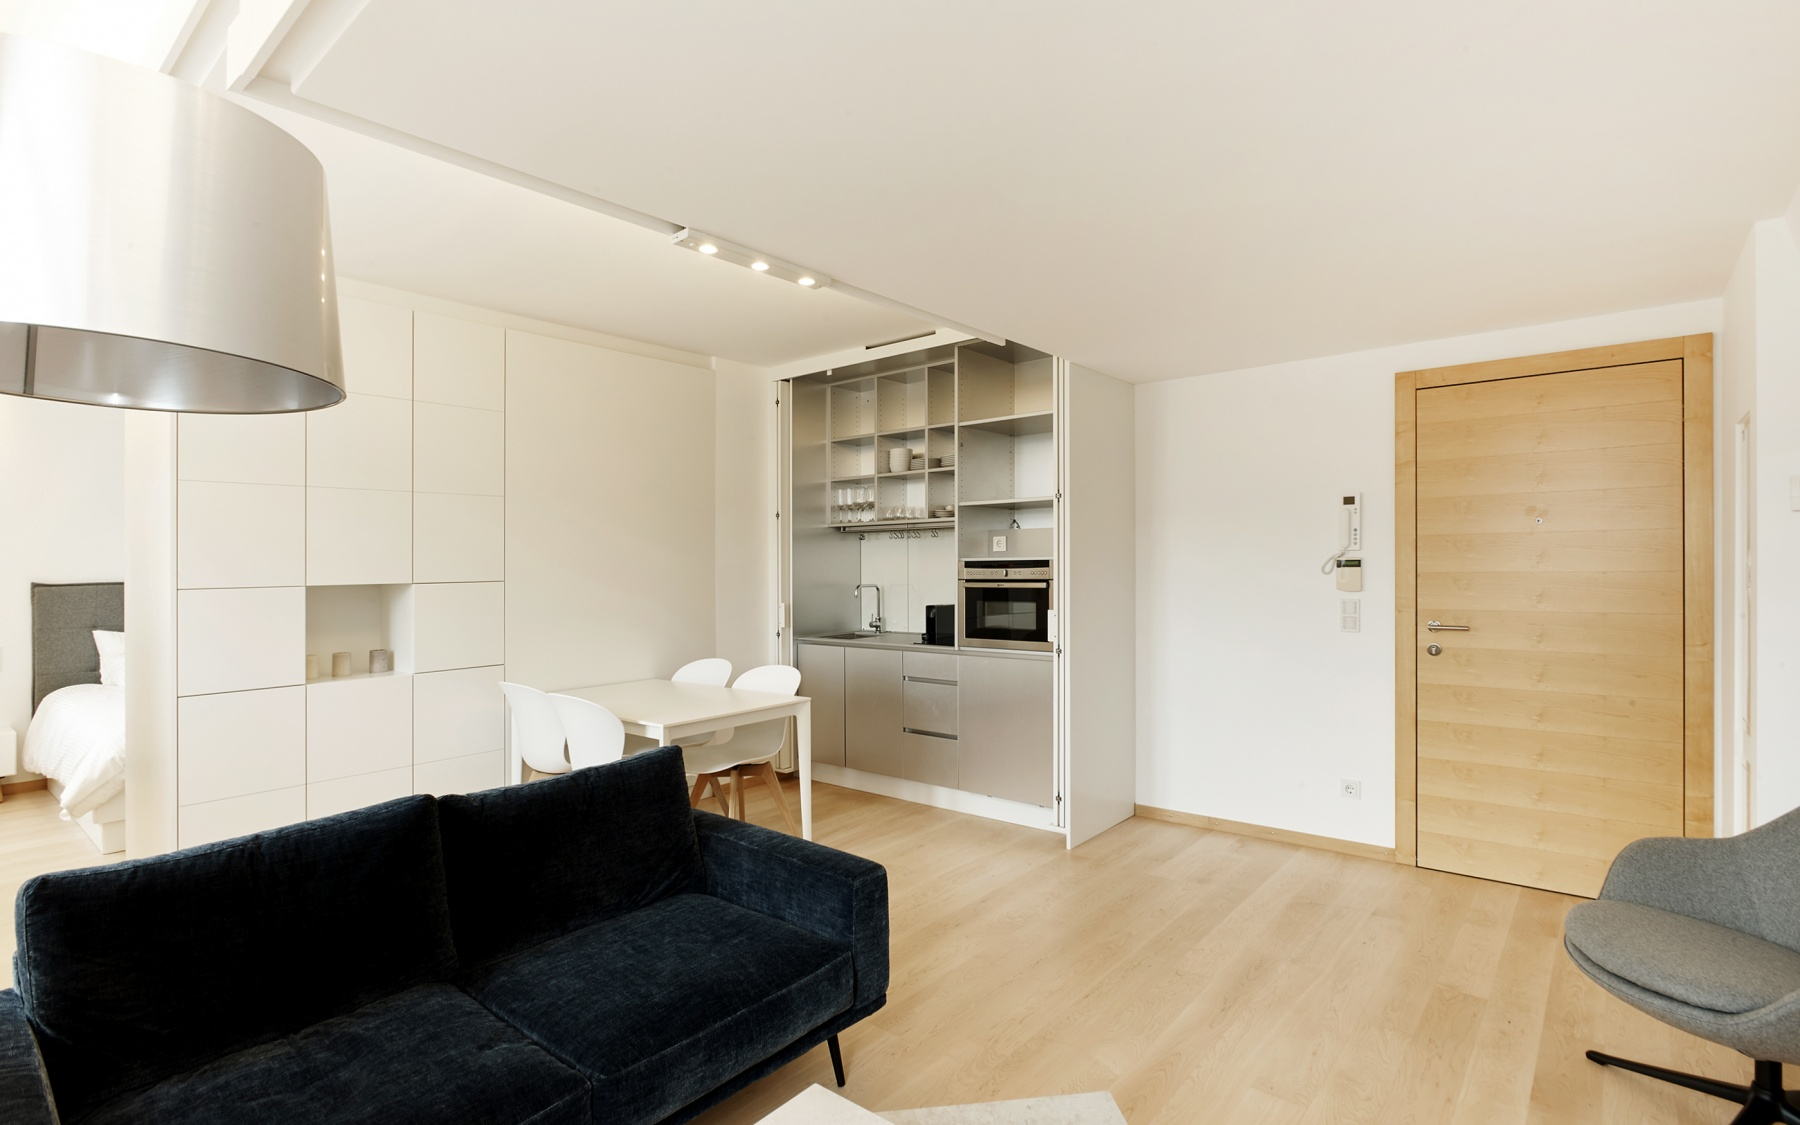 Furnished apartment in Luxembourg city center